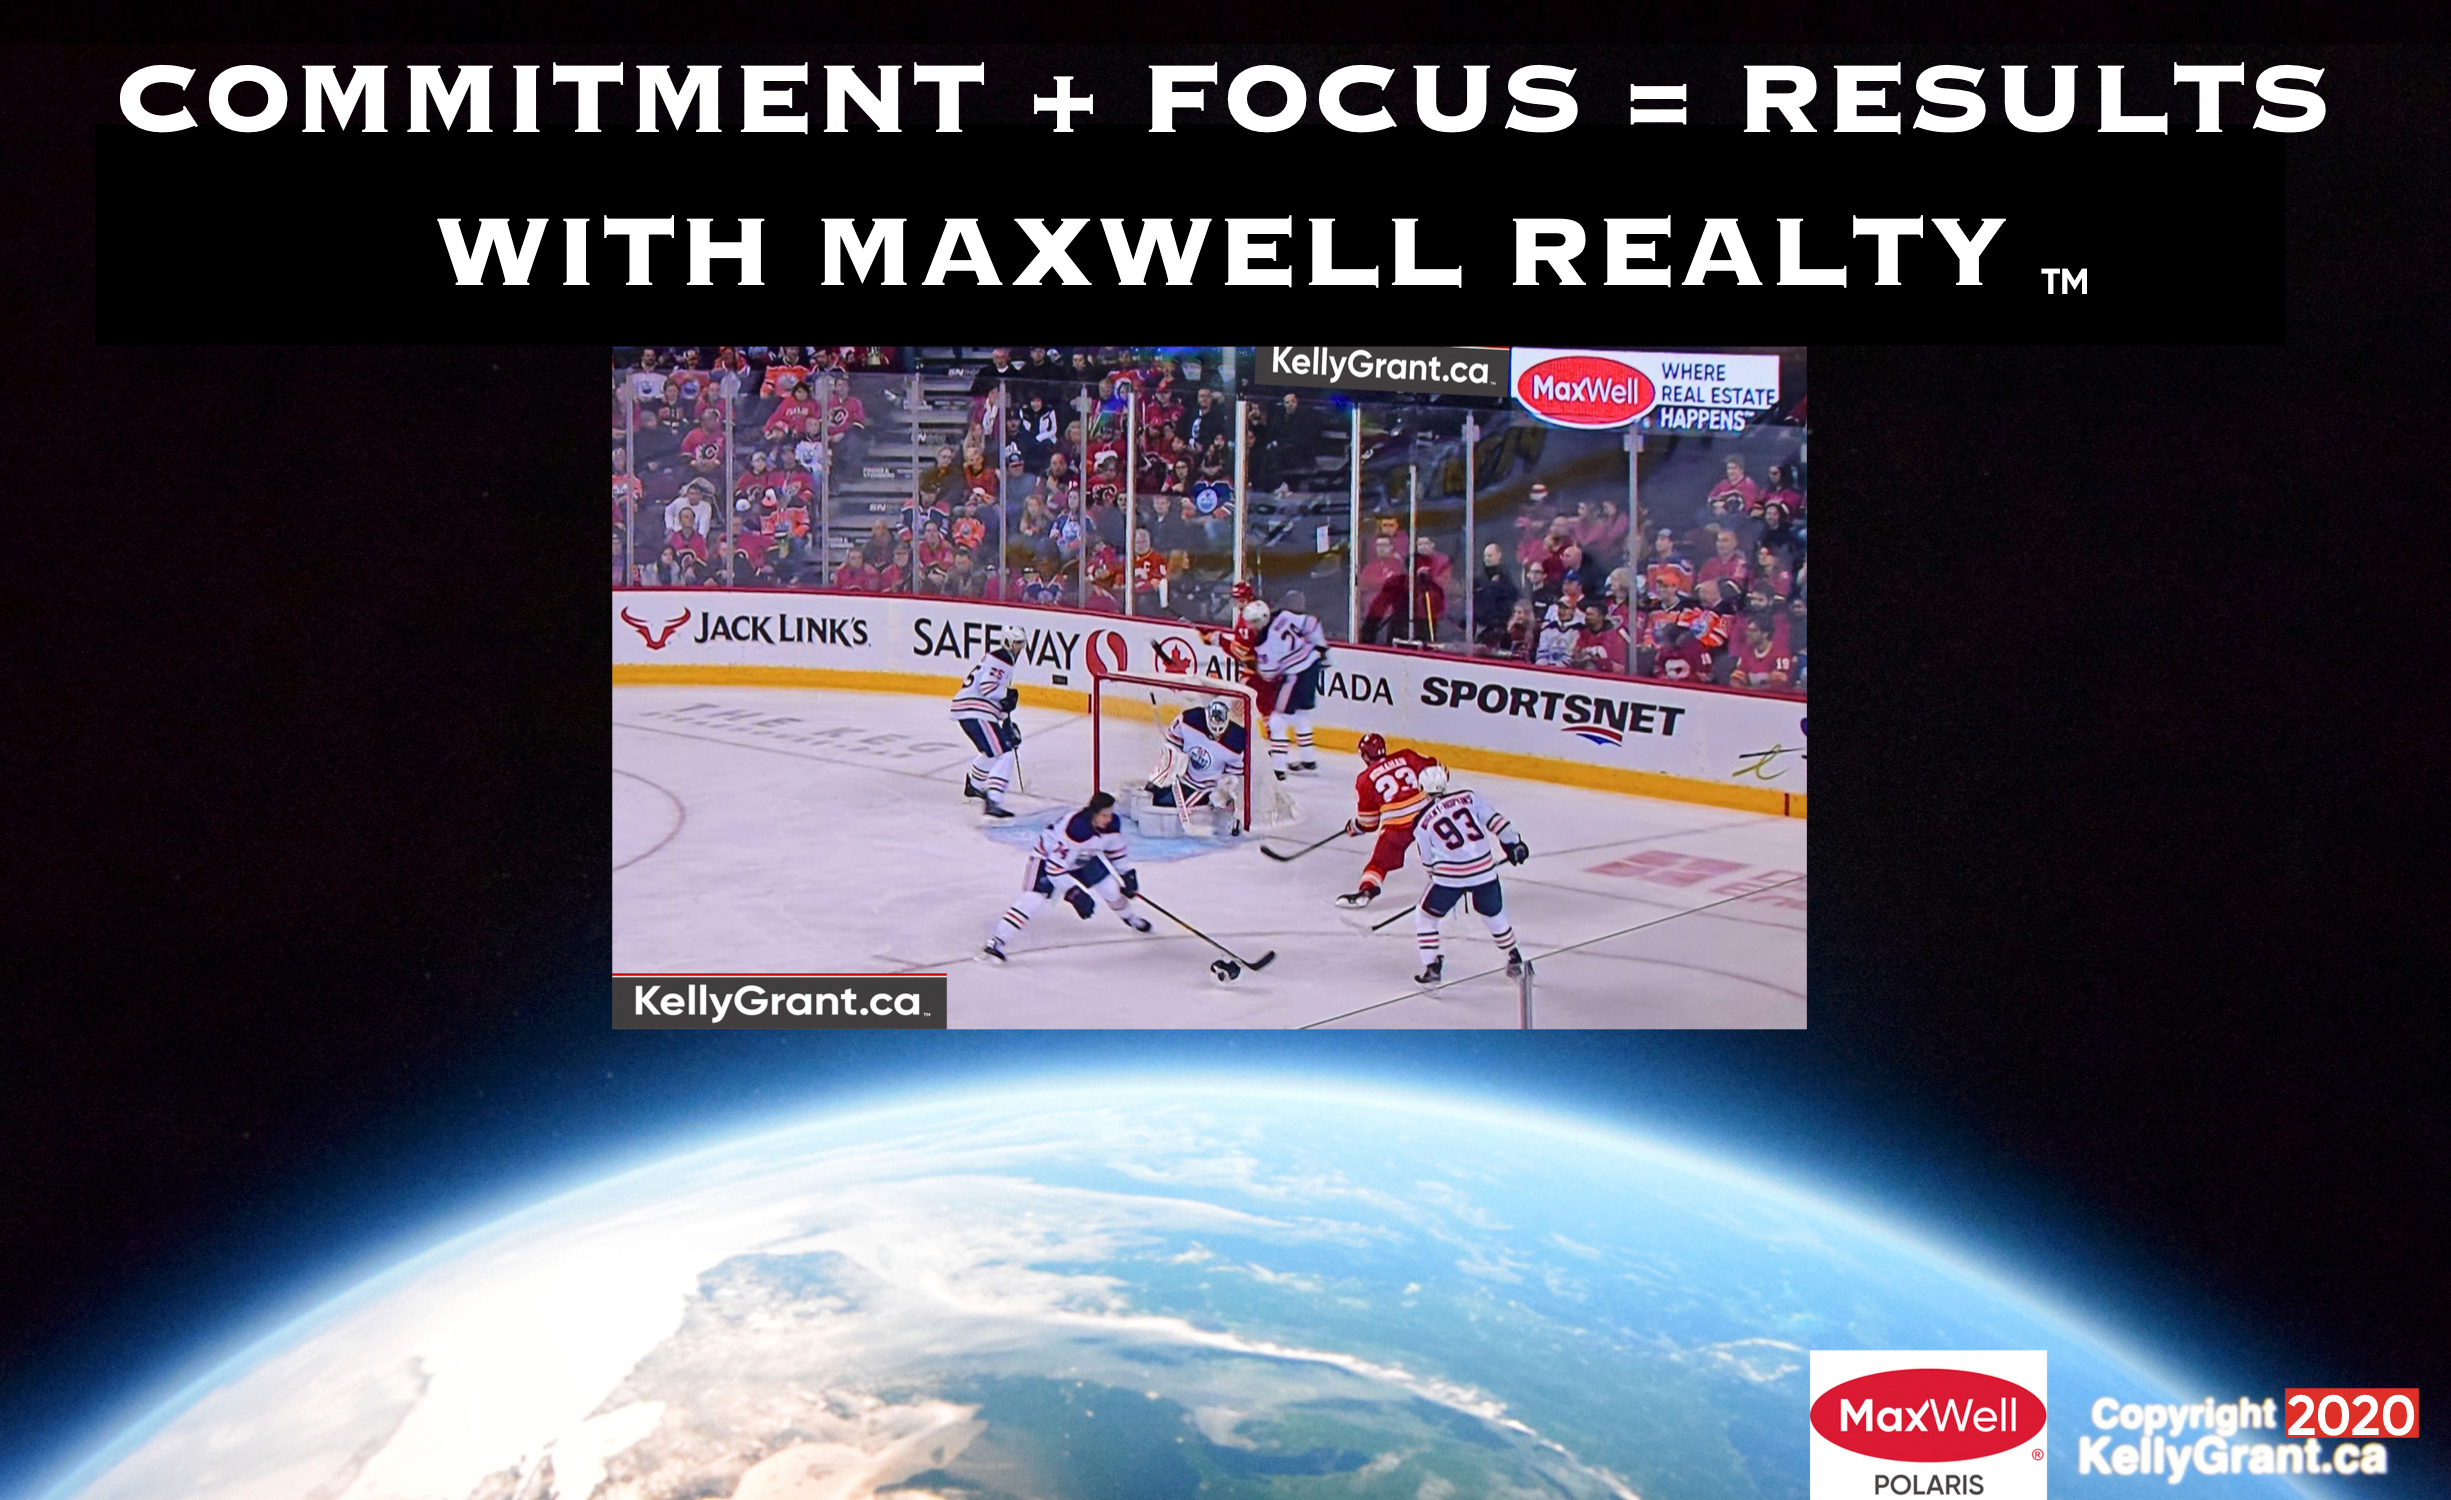 #11-KG MaxWell Commitment Focus Results.jpg